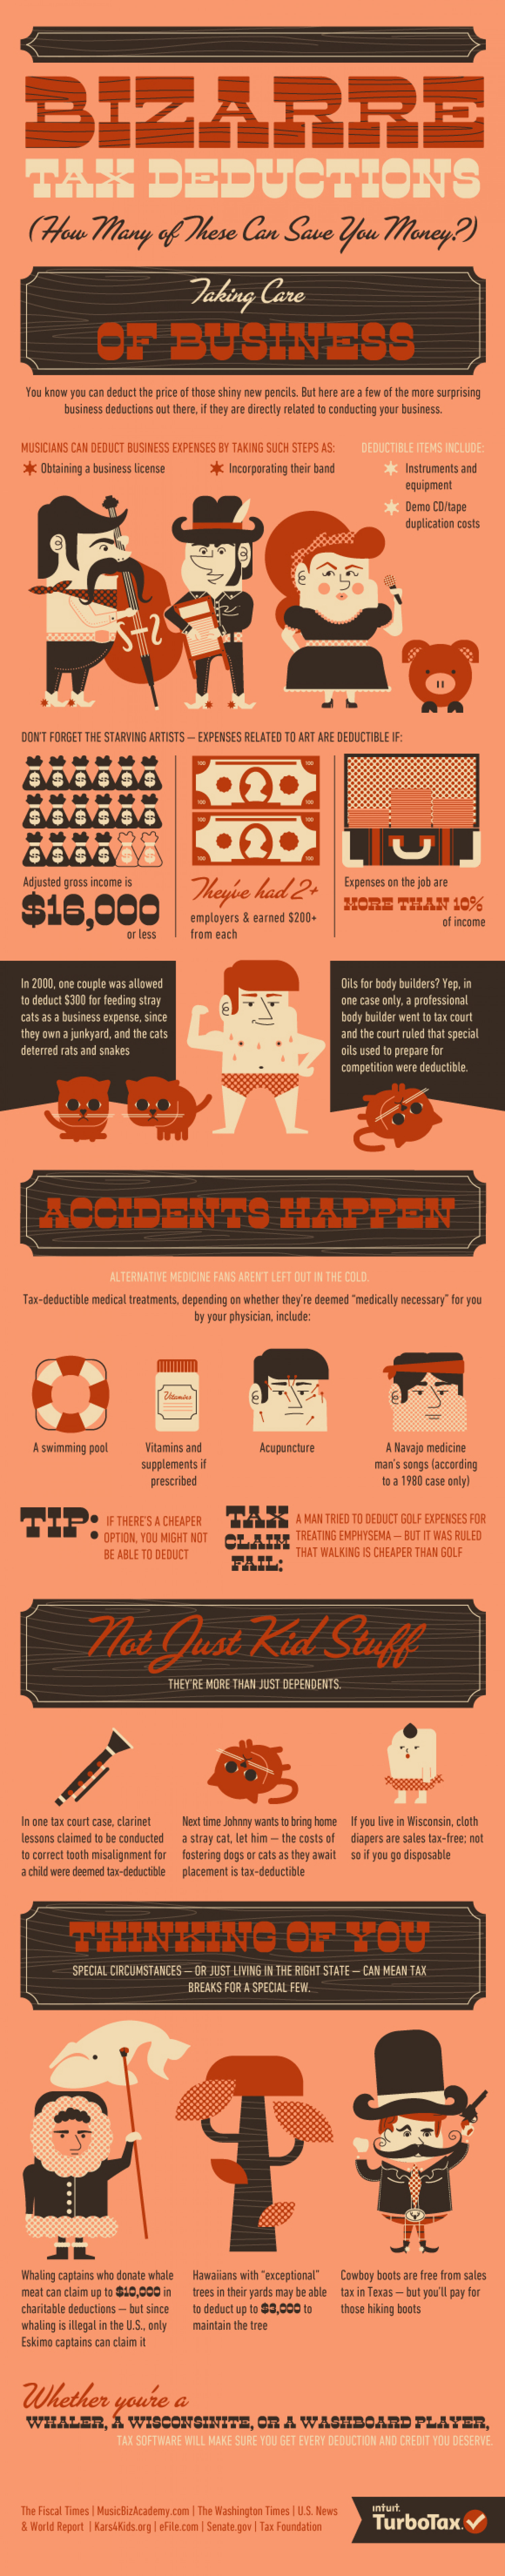 Bizarre Tax Deductions Infographic